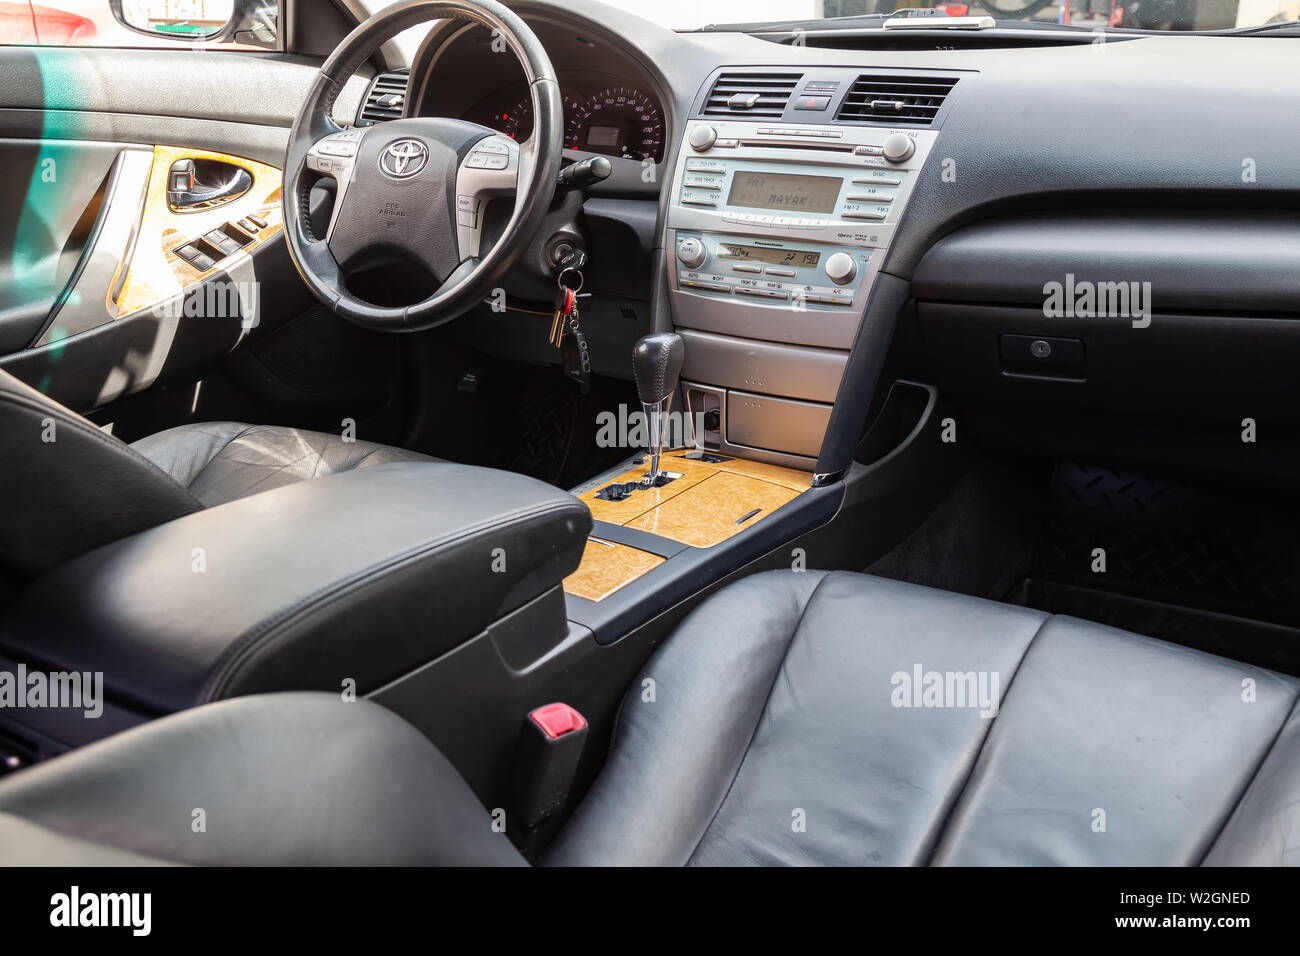 Toyota Camry Interior >> Novosibirsk Russia 07 09 2019 View To The Interior Of